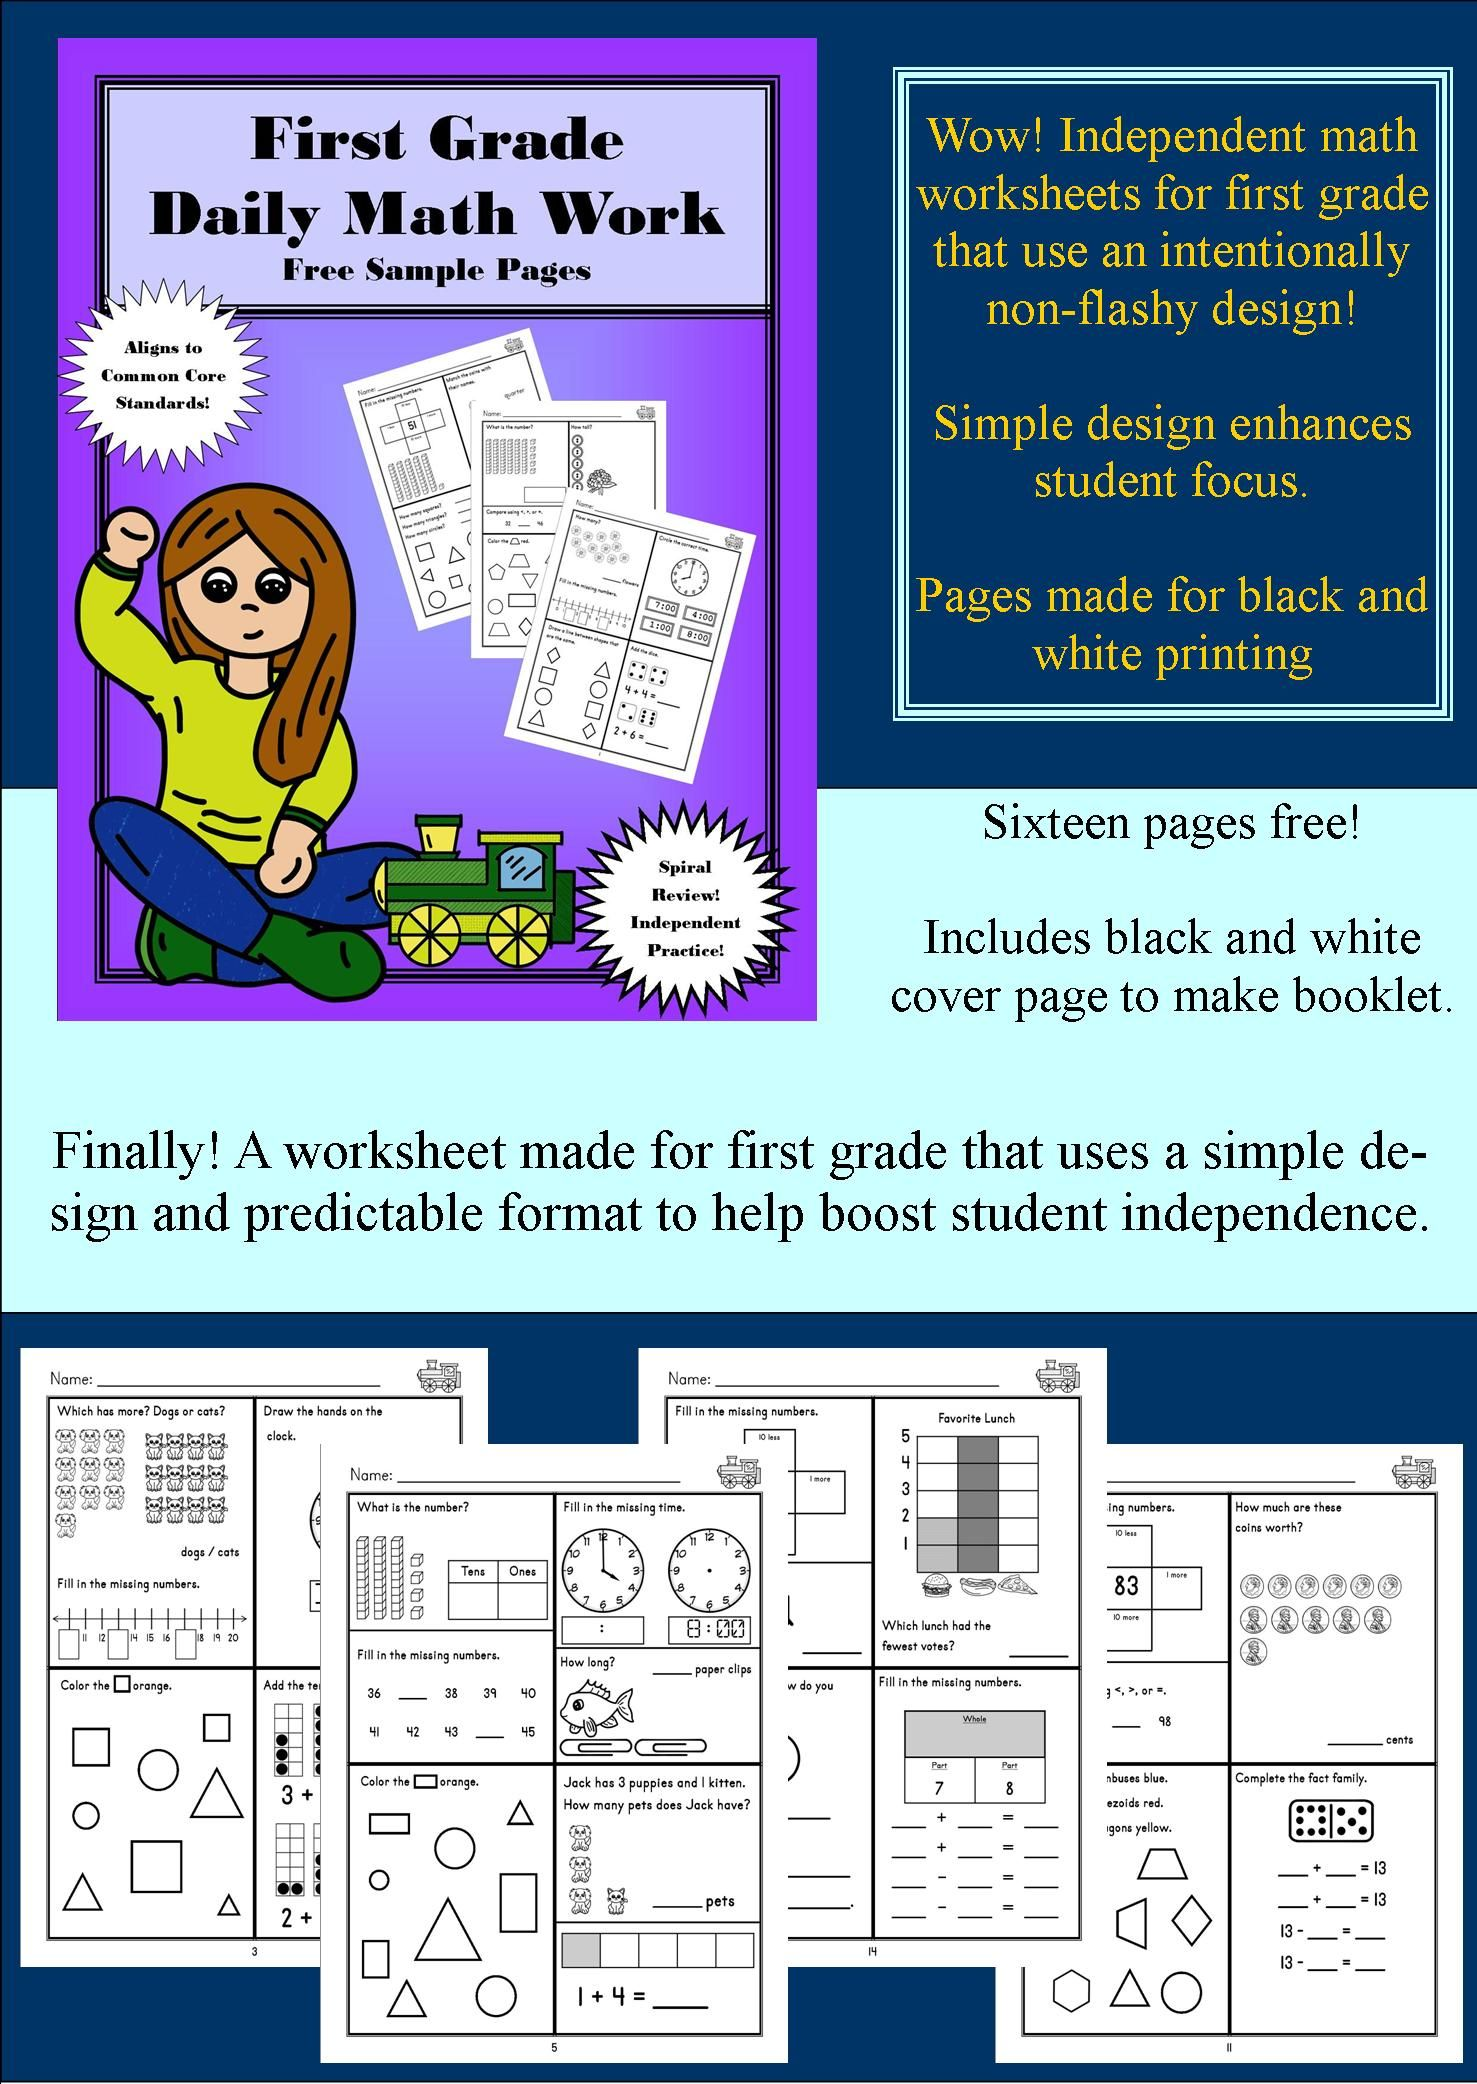 Download Some Free Pages From The Brand New Amazing First Grade Workbook Series It Features A Simple Design That Fosters Student Ind Math Work Daily Math Math [ 2084 x 1477 Pixel ]